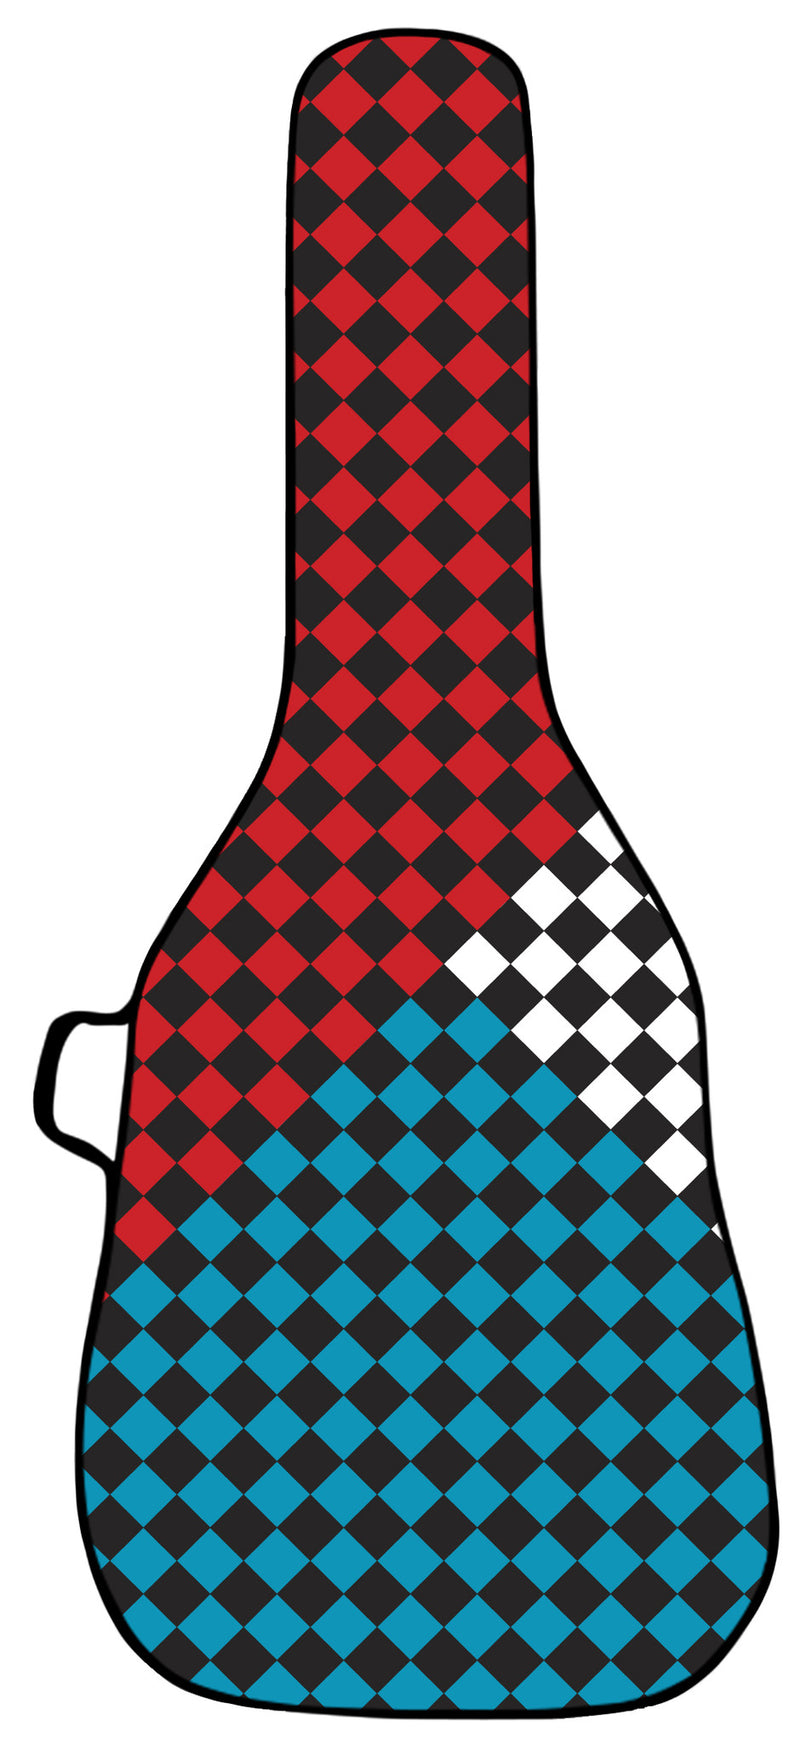 Checkered Flag Guitar Bag